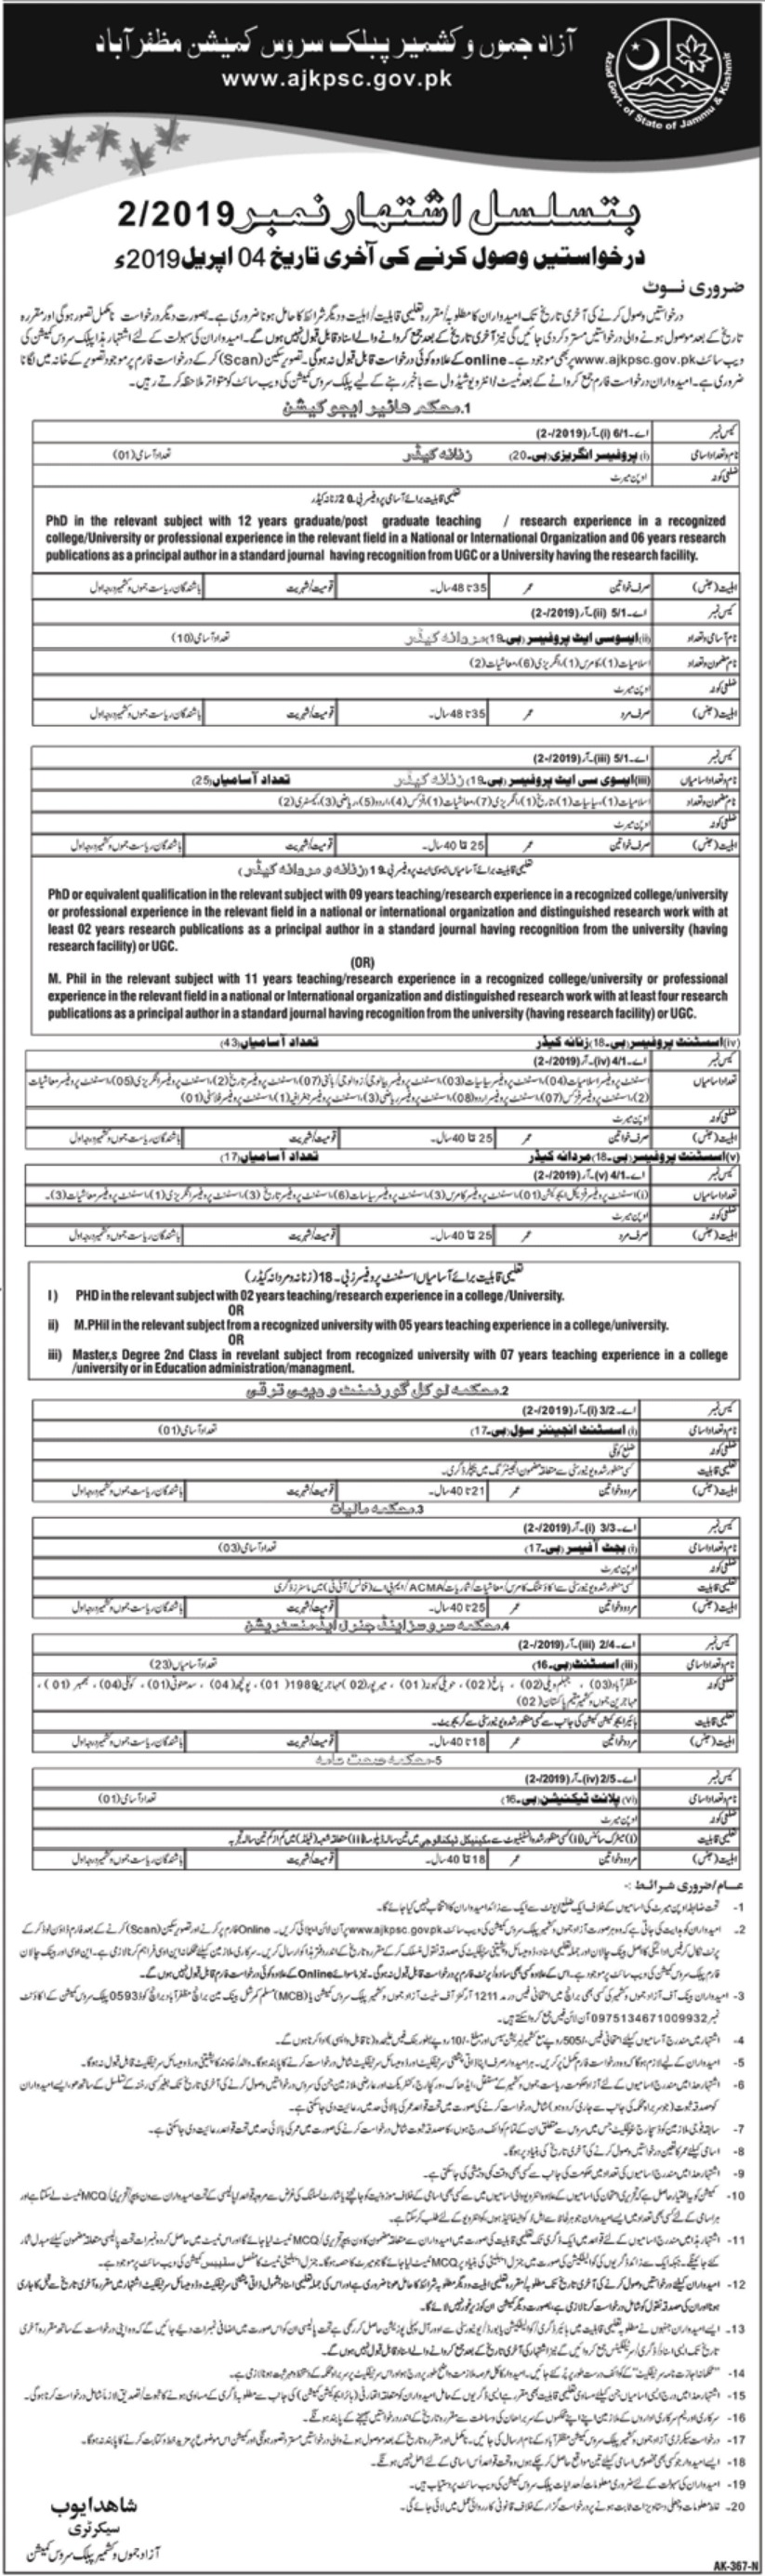 AJK Public Service Commission Jobs 2019 AJKPSC Corrigendum